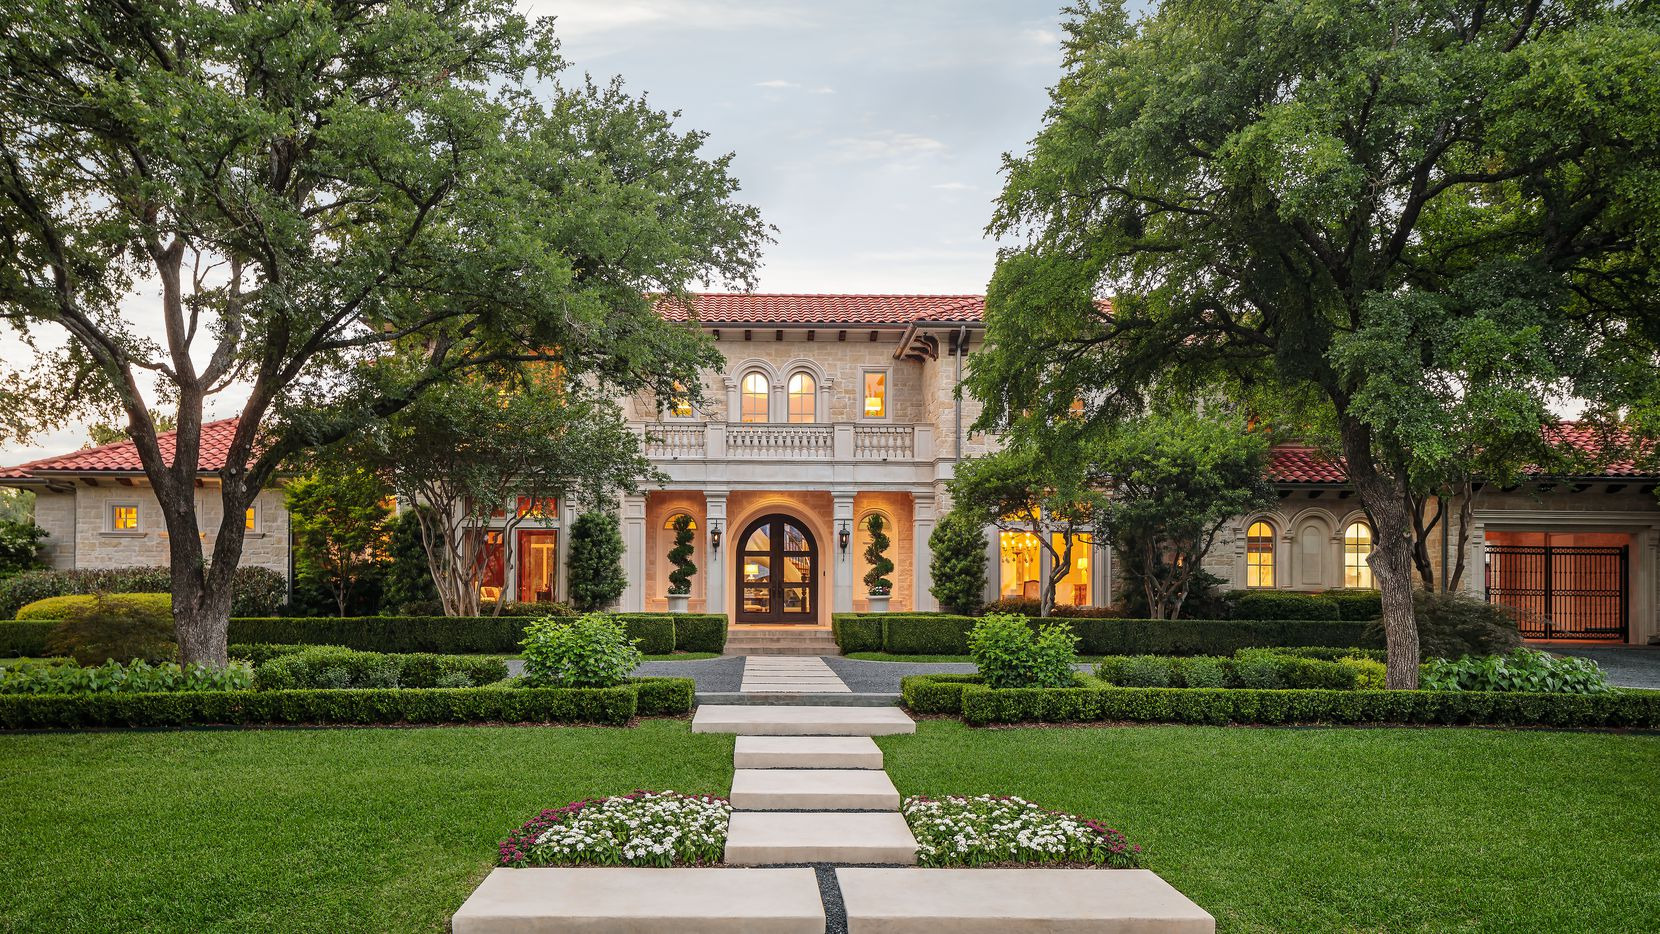 This home at 5027 Radbrook Place in Dallas' Preston Hollow neighborhood is listed for $4,795,000.